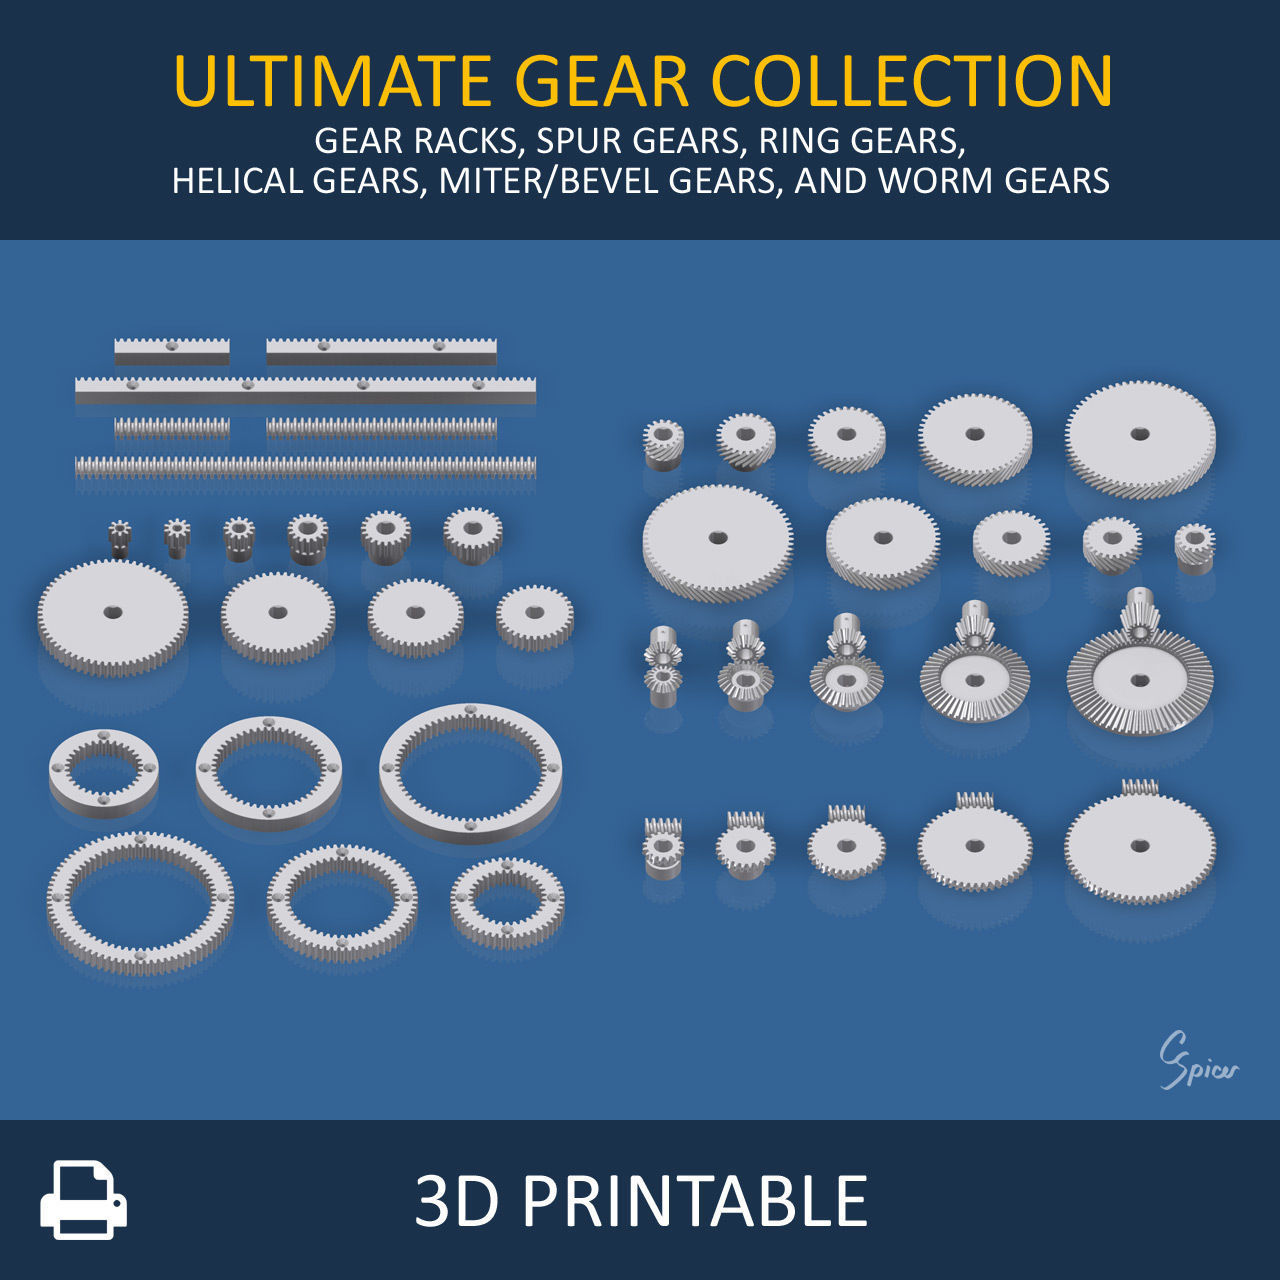 Ultimate Gear Collection